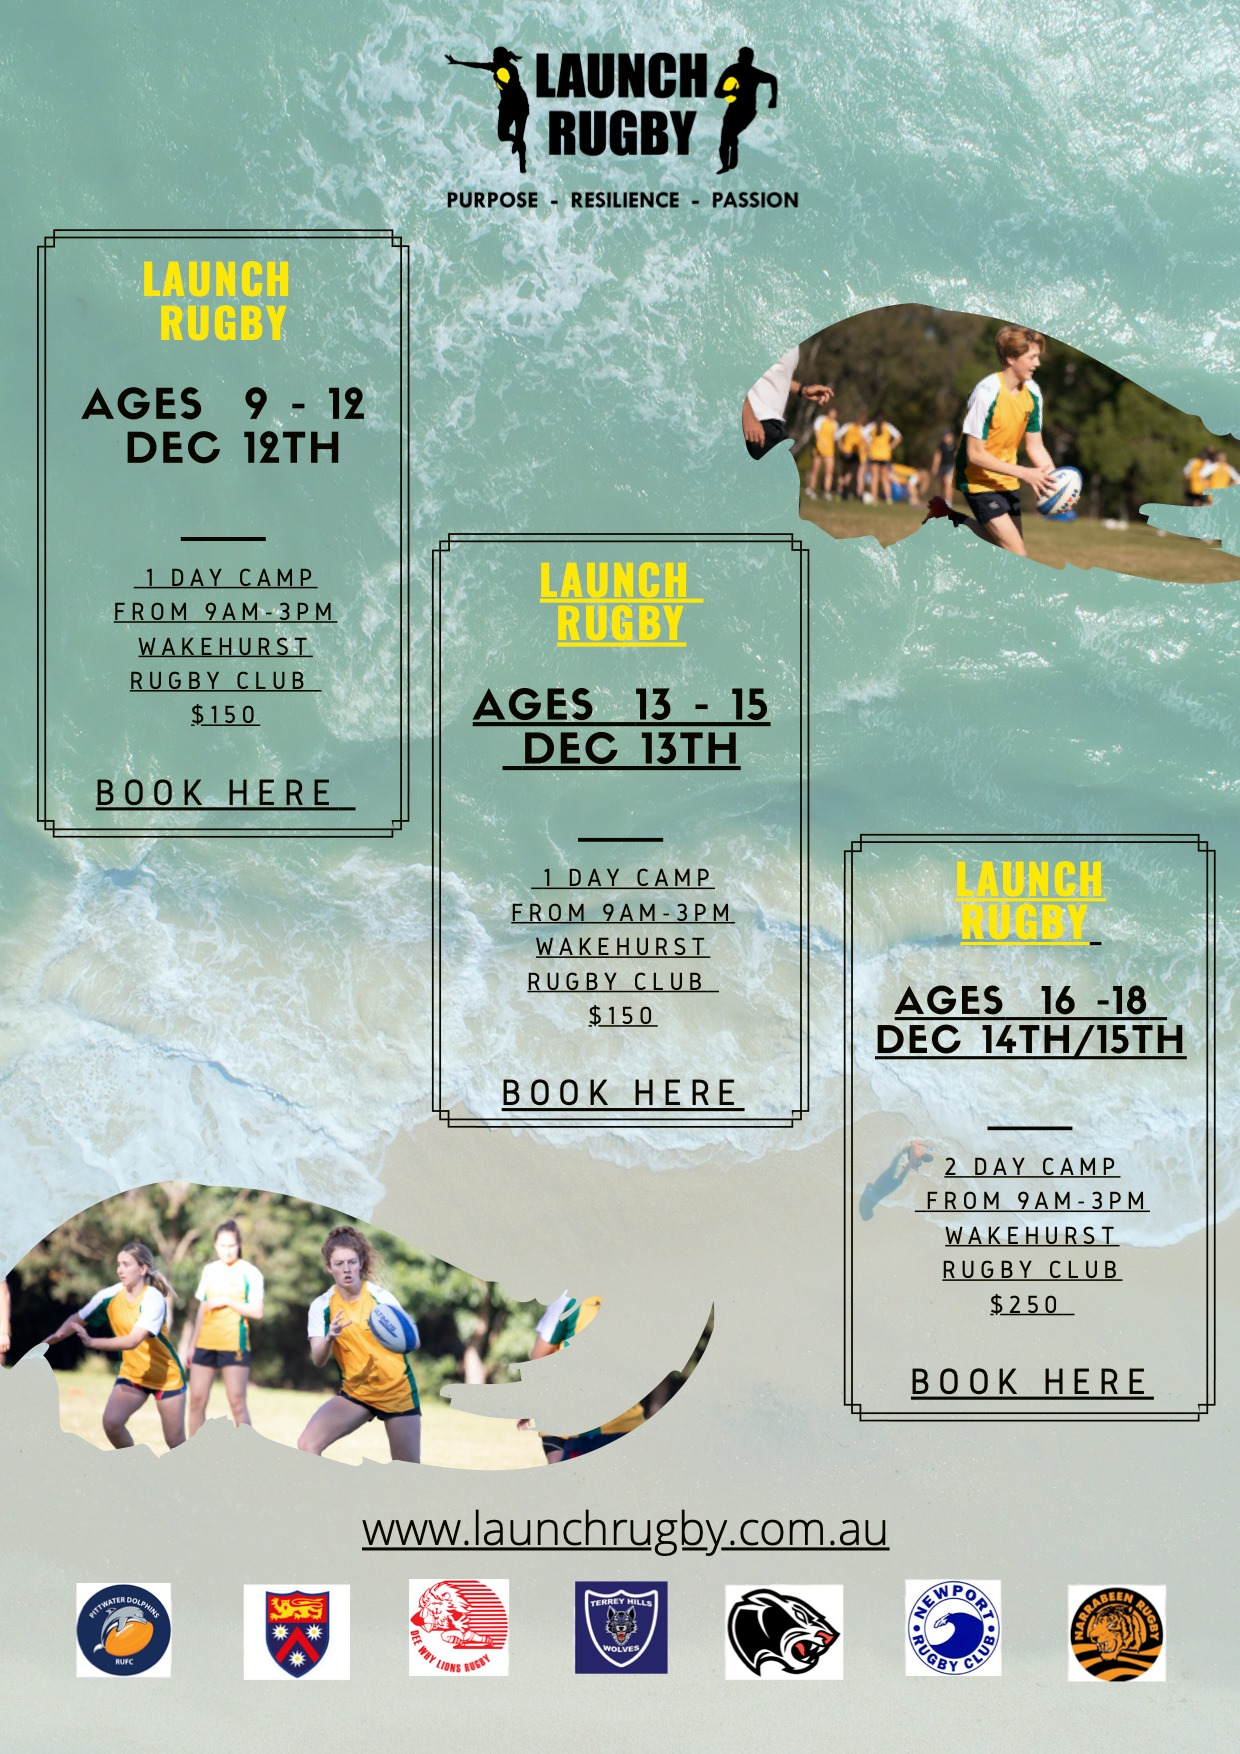 Check out the Launch Rugby camps being held on the Northern Beaches...